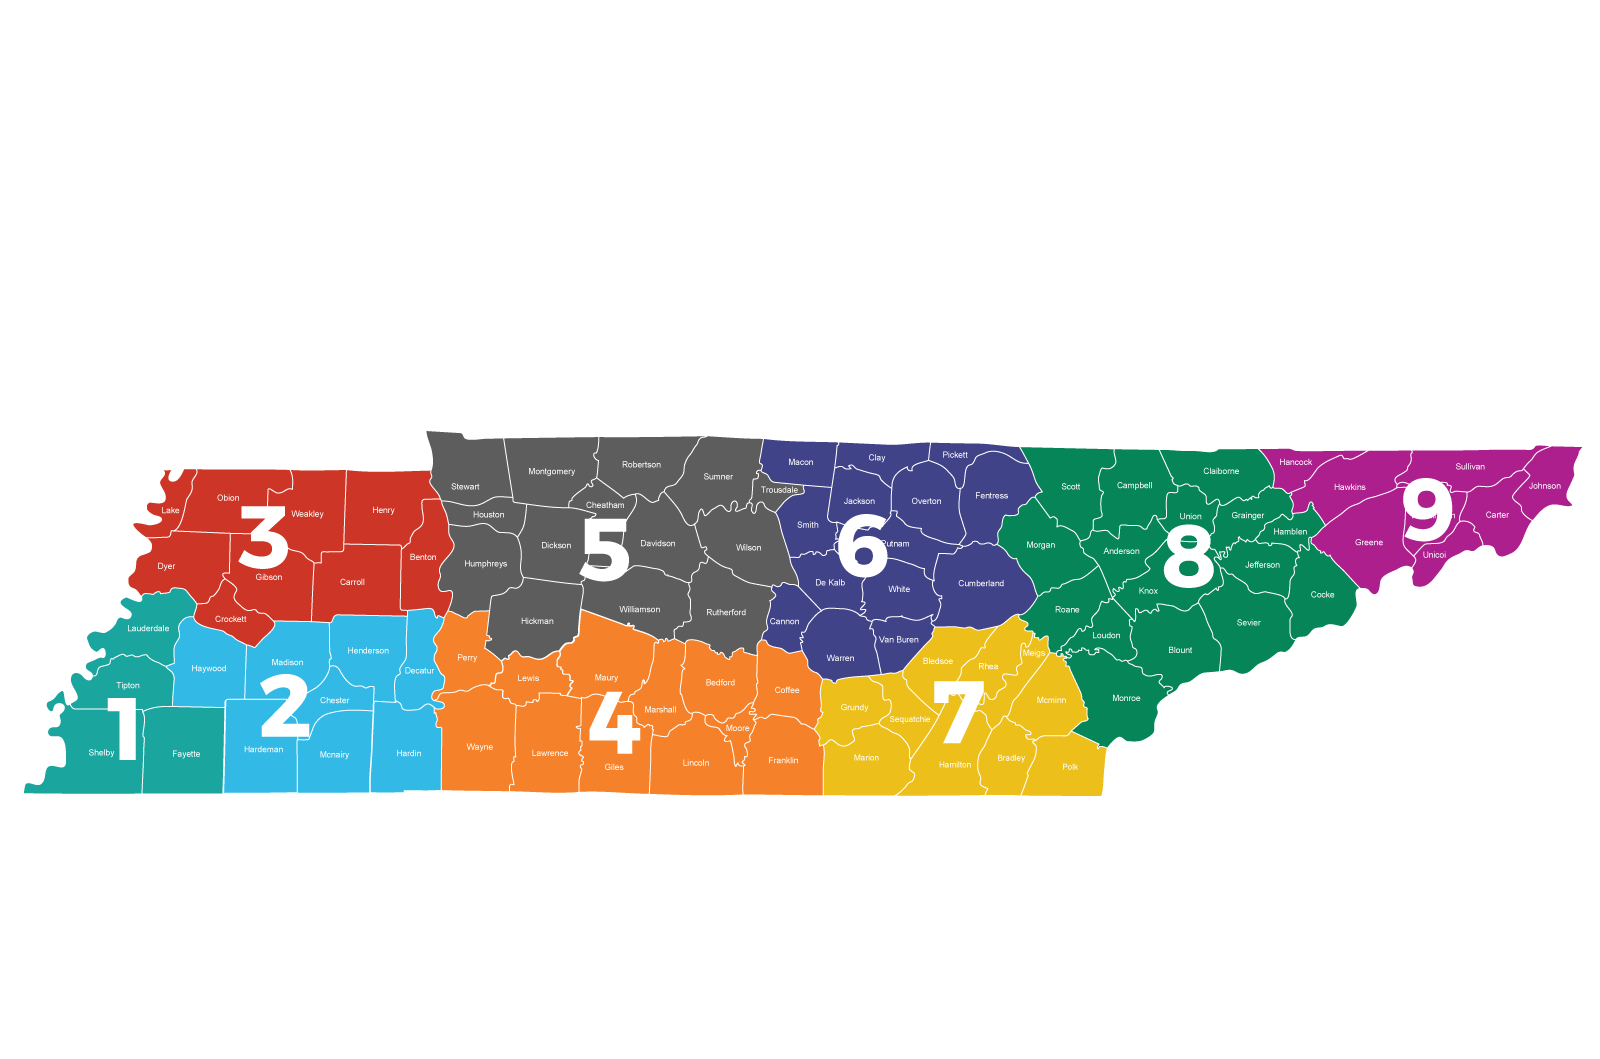 Map of Tennessee mapped into regions